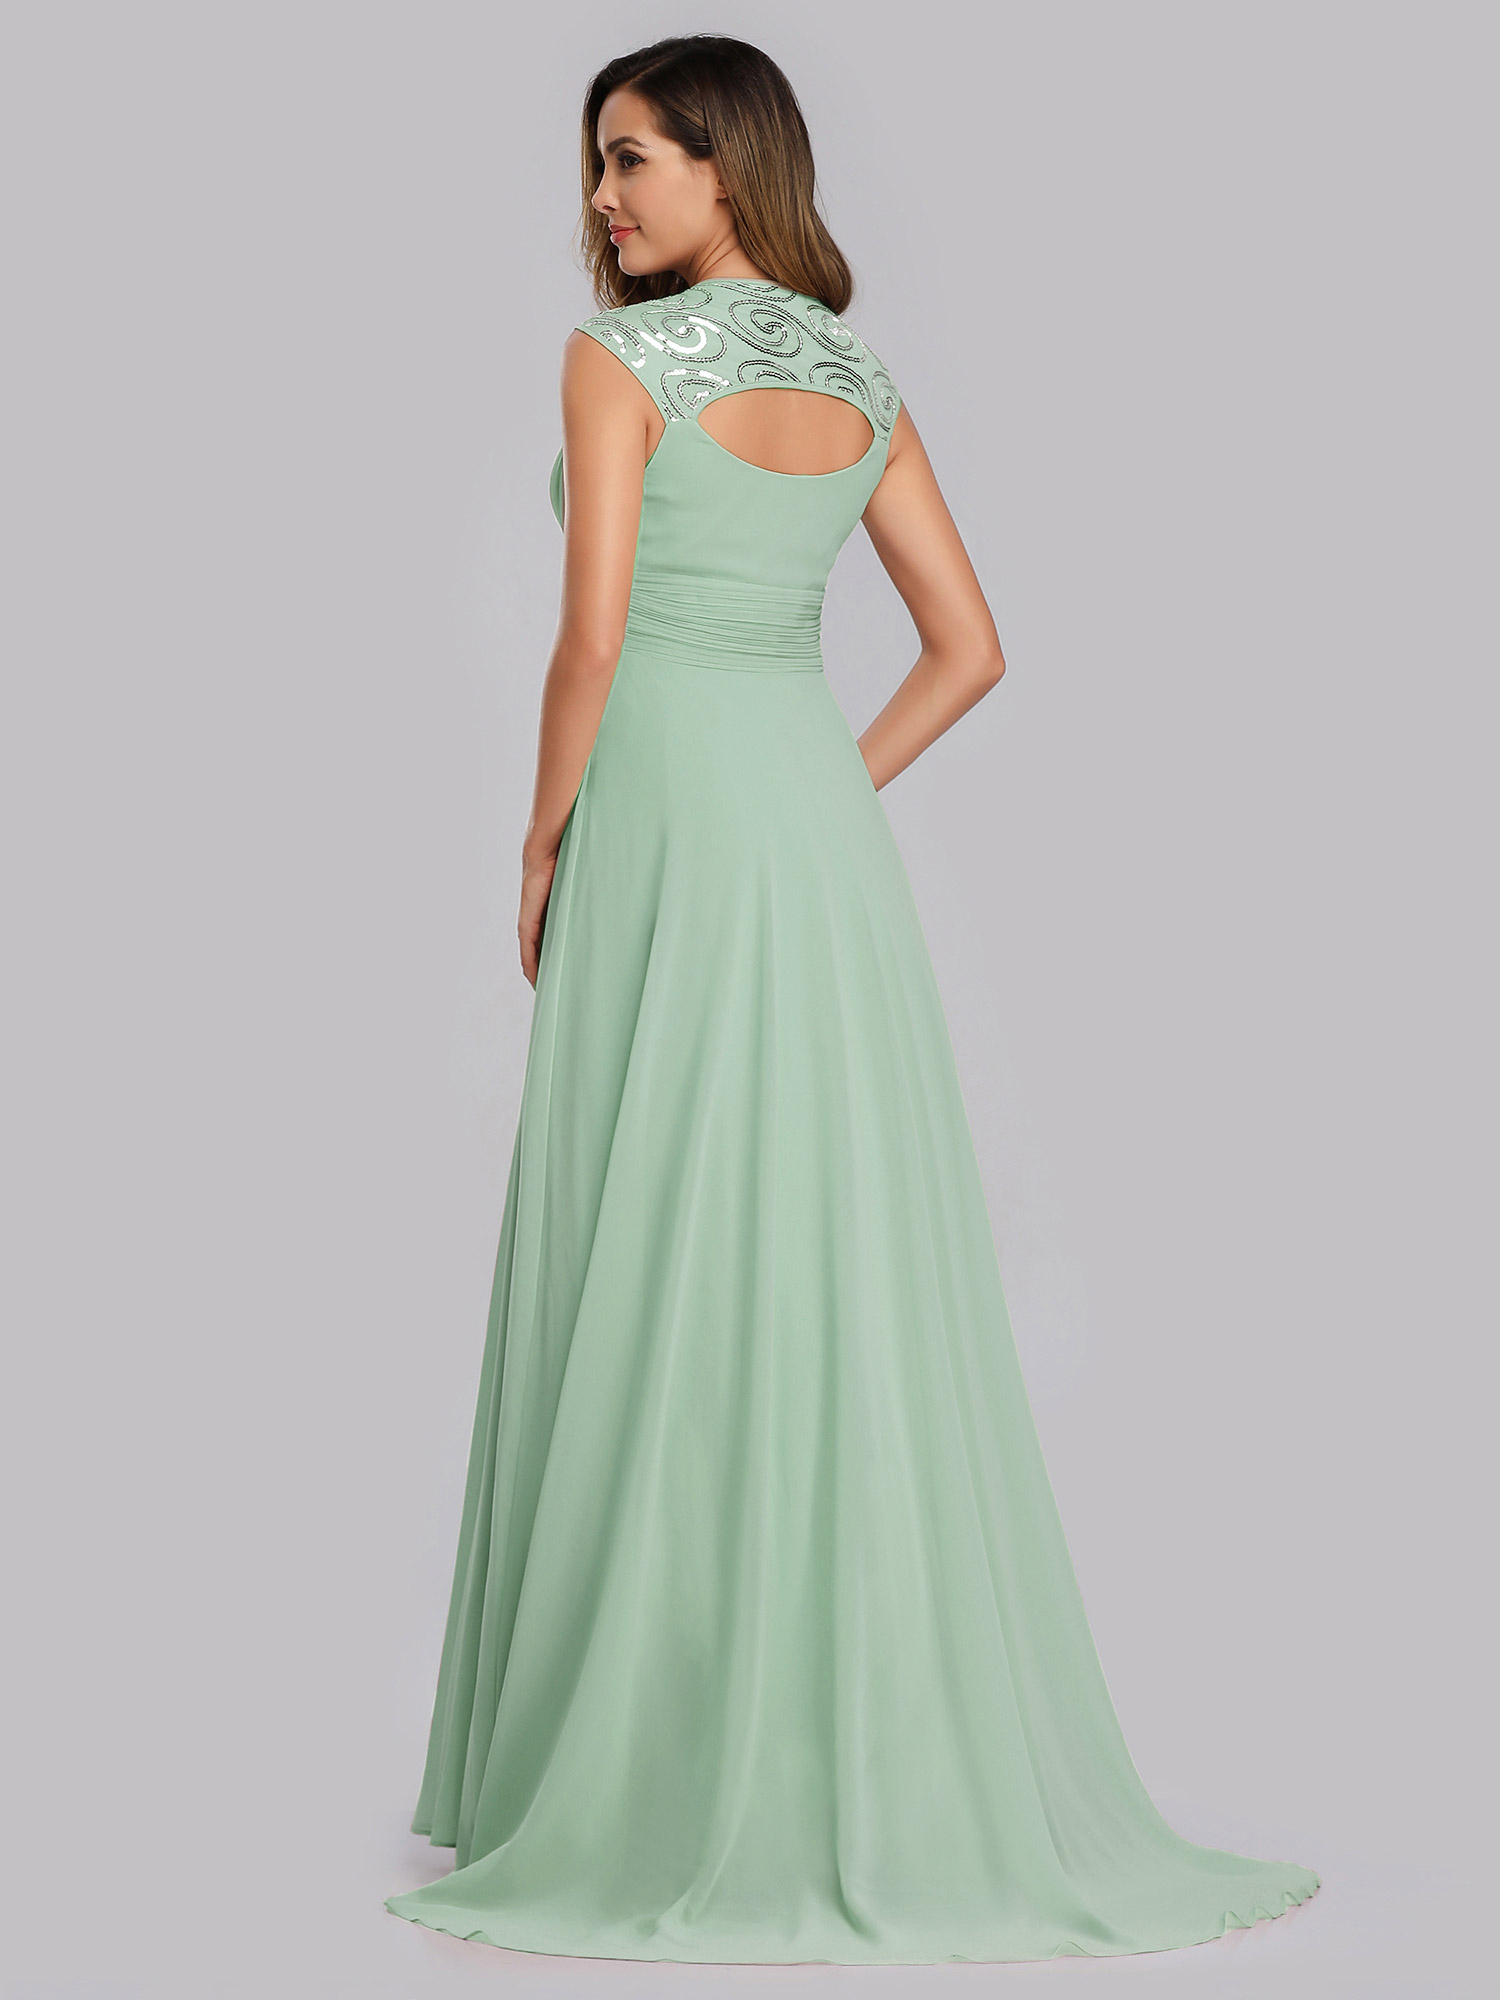 Ever-Pretty-Cap-Sleeve-Bridesmaid-Dresses-Elegant-Long-V-neck-Evening-Gown-09672 thumbnail 26